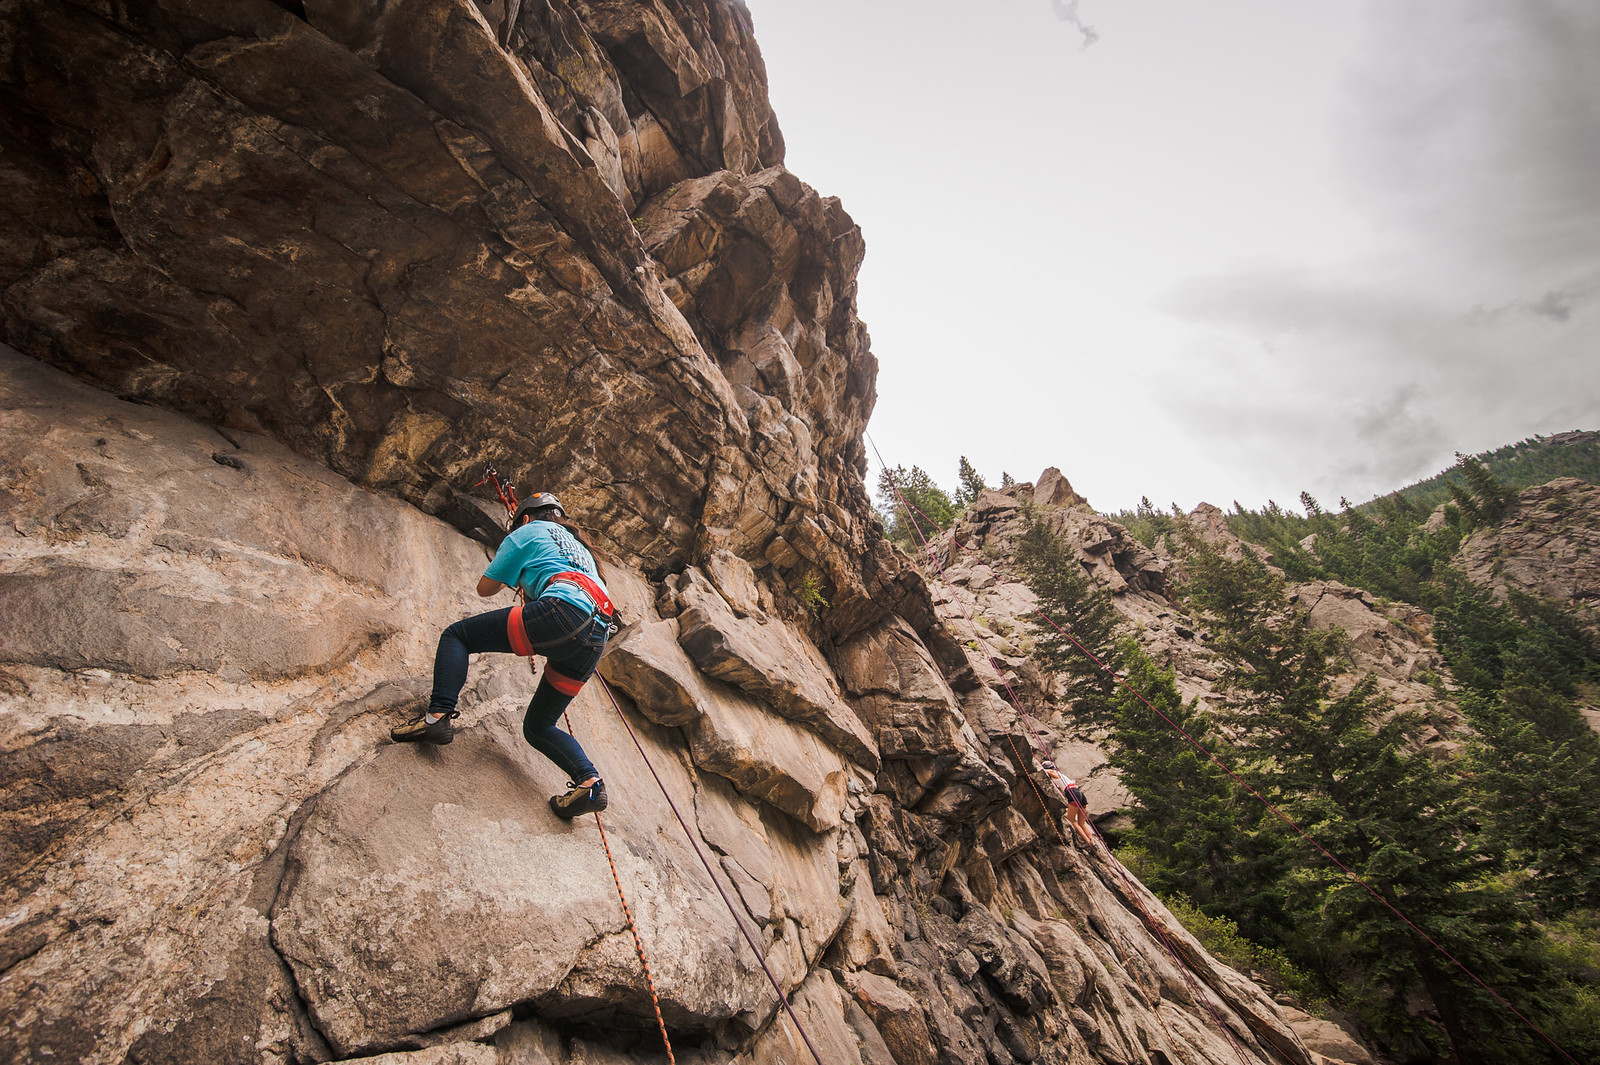 Rock Climbing Can Pose Threat to Cliff-Dwelling Birds, but May also Offer Opportunity